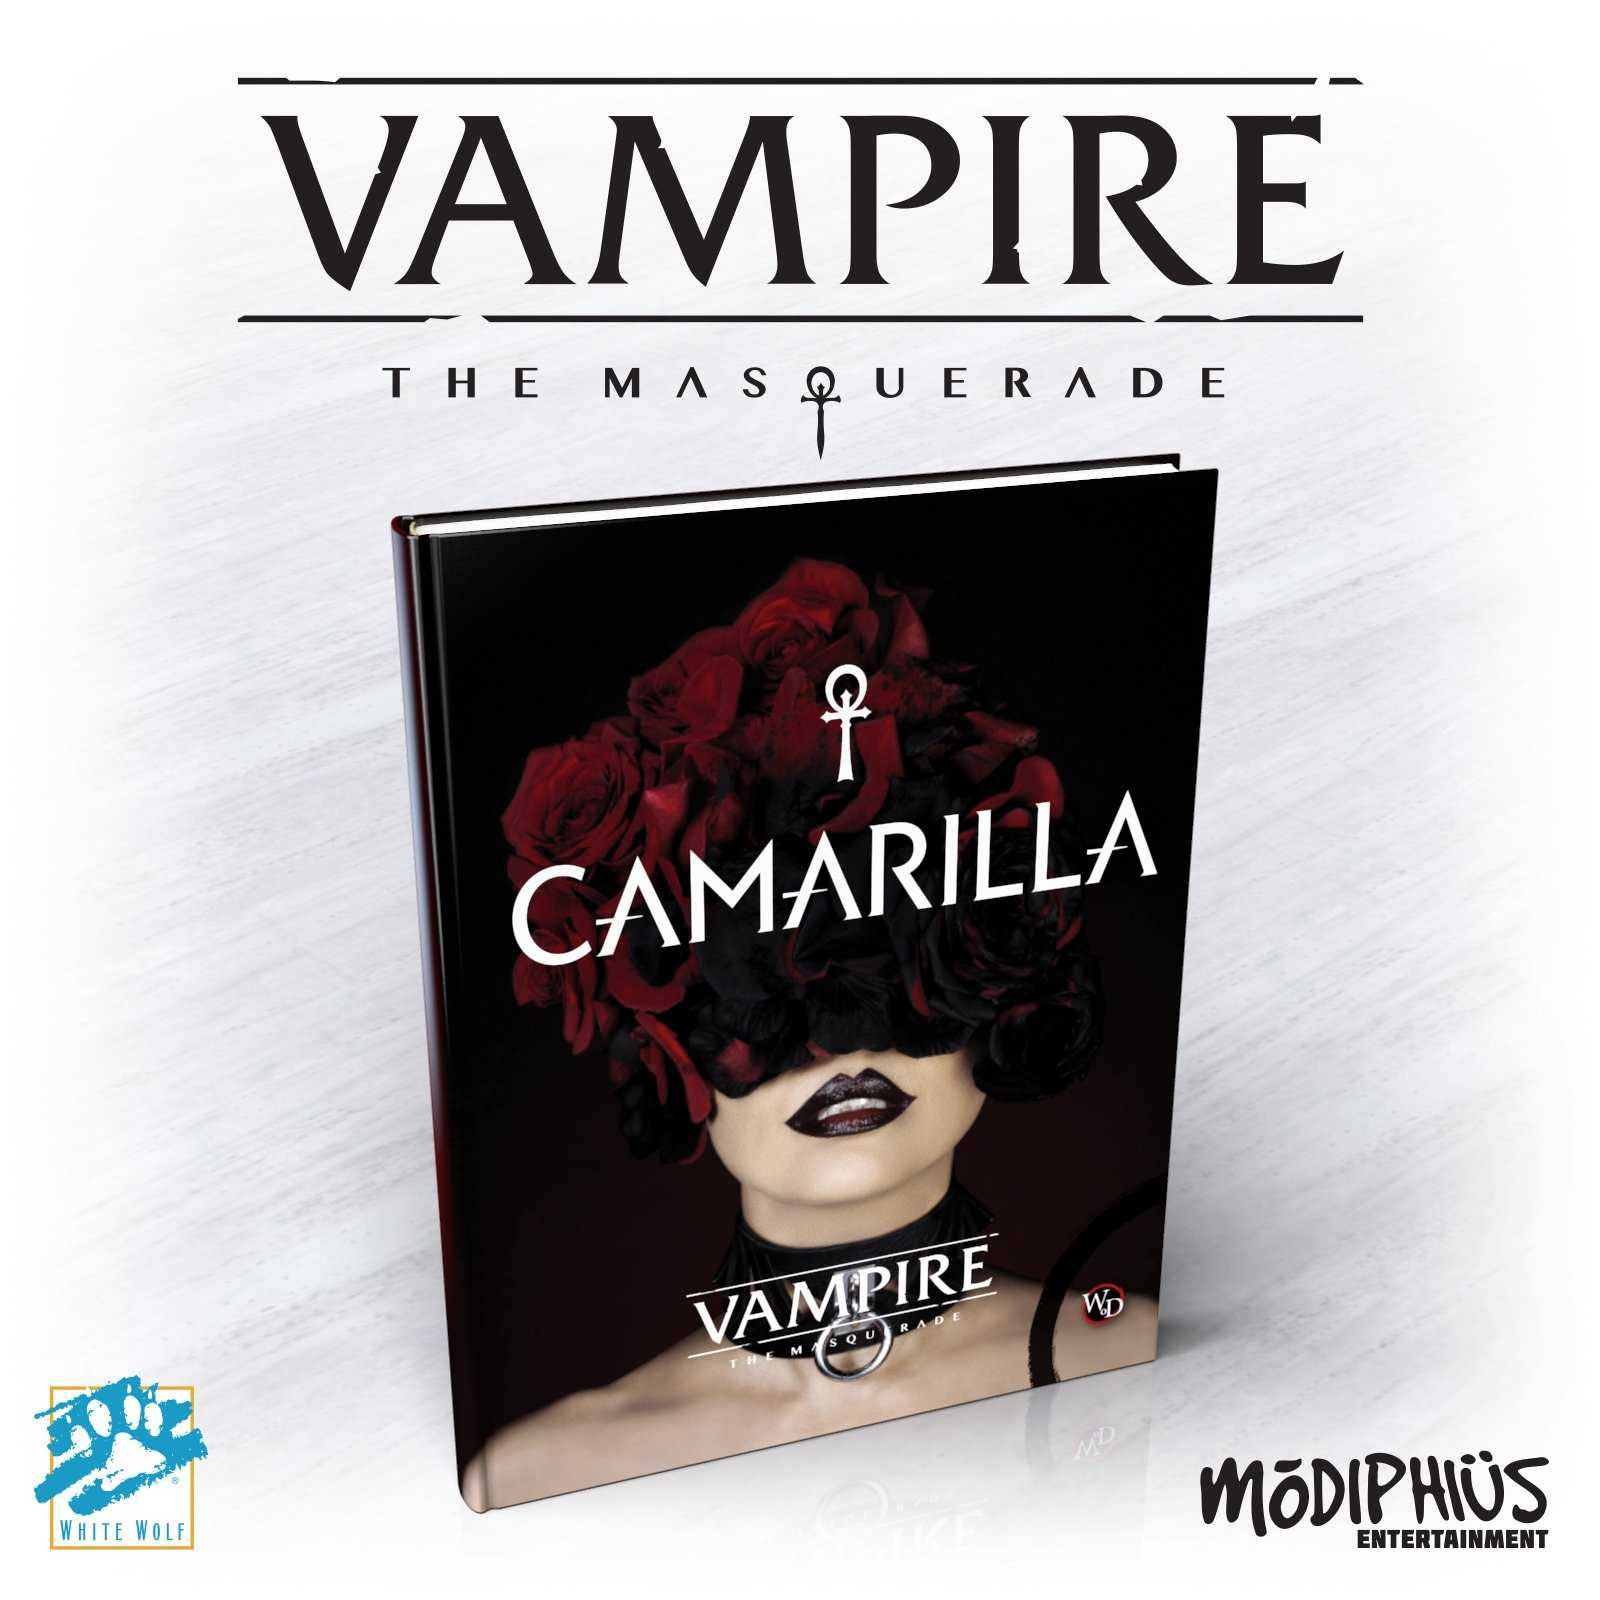 Vampire: the Masquerade (5th edition) - The Camarilla Sourcebook